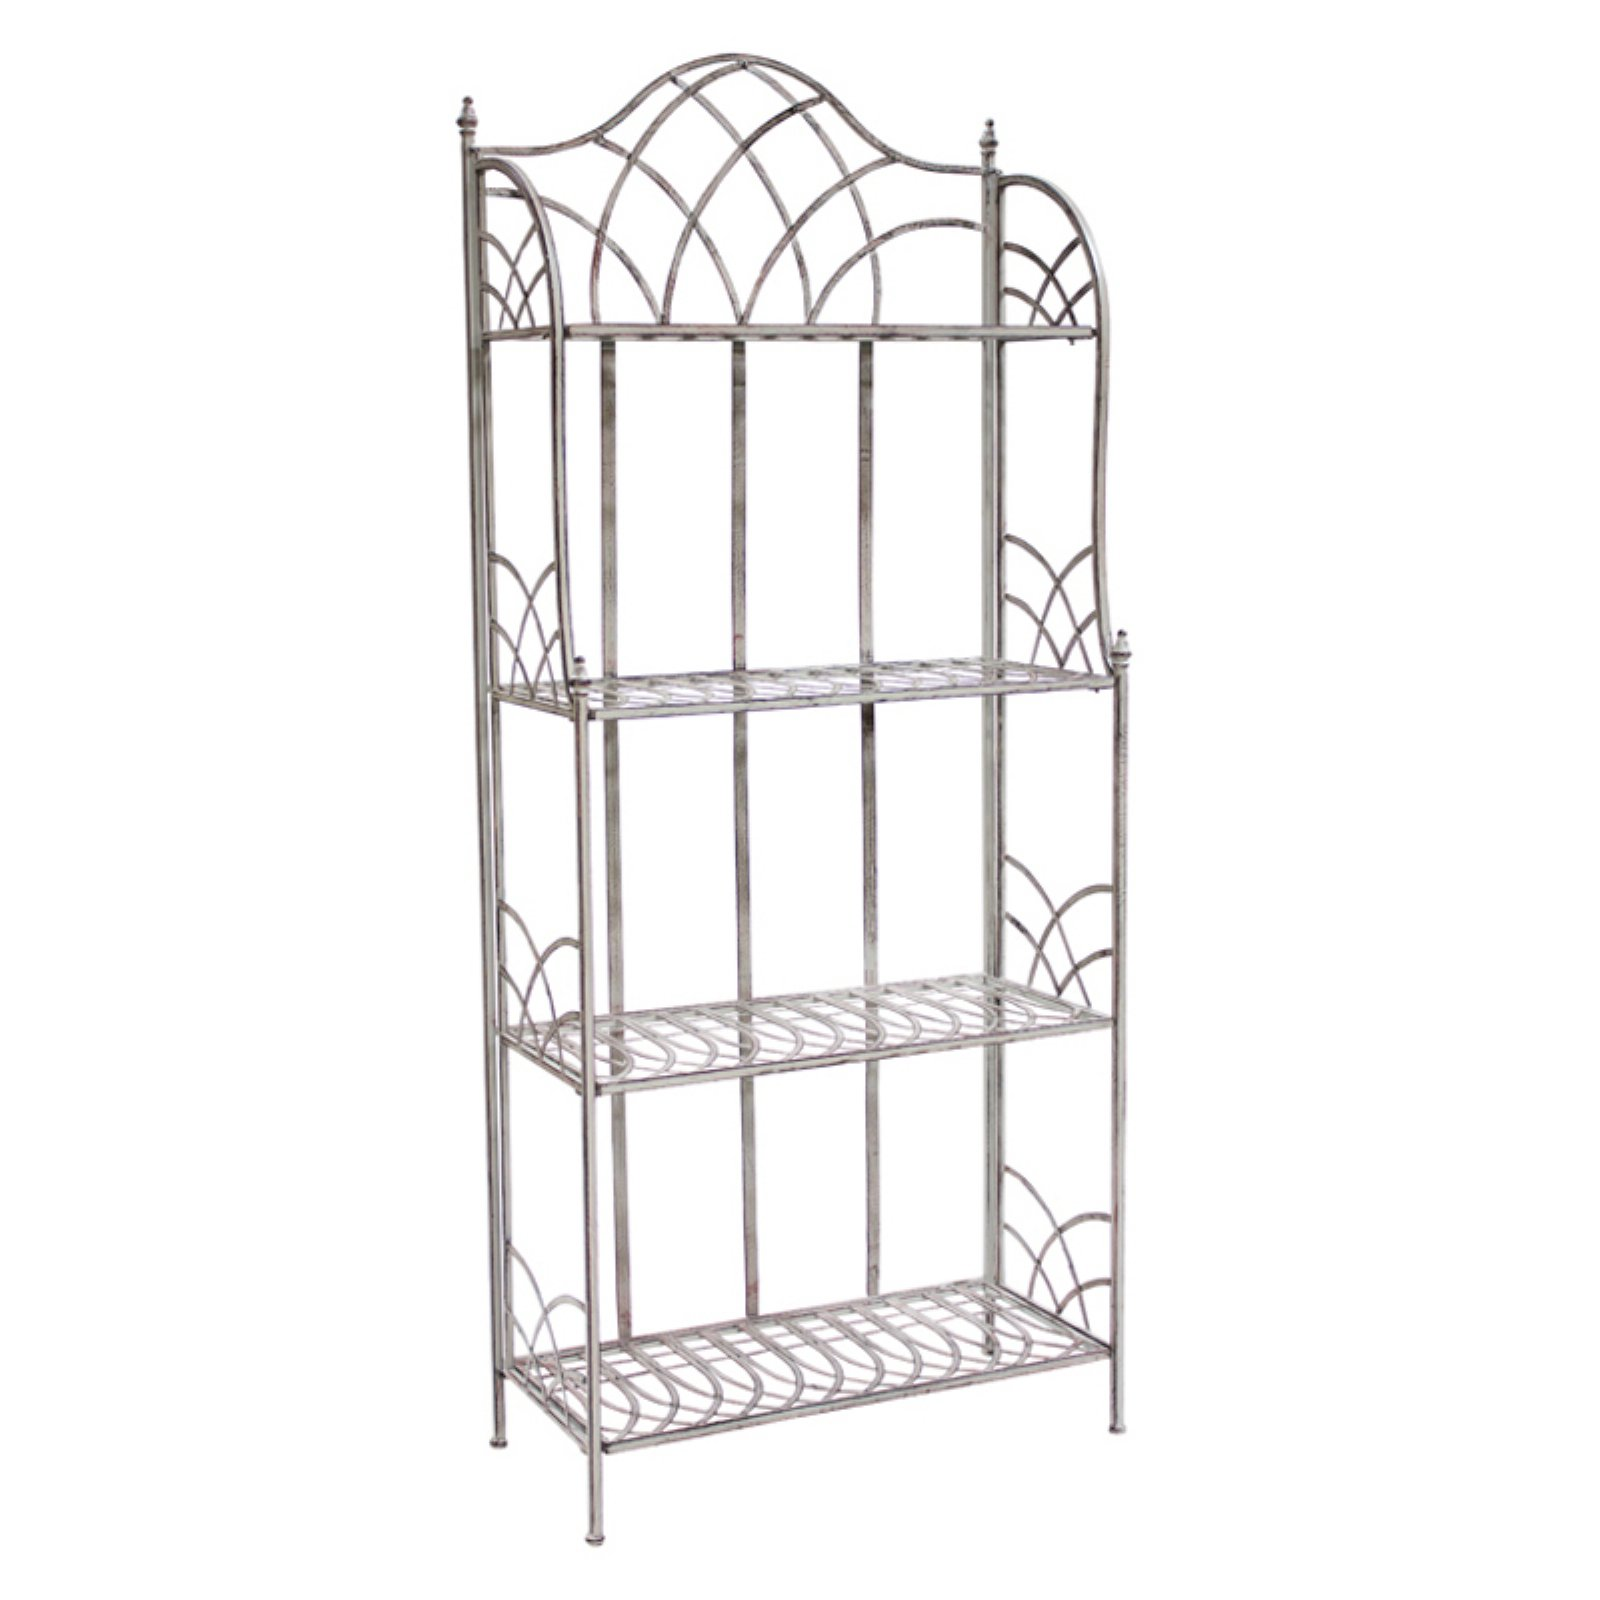 Melrose International 70526 Four Tier Outdoor Shelf Iron Shelf Outdoor Shelves Metal Shelving Units